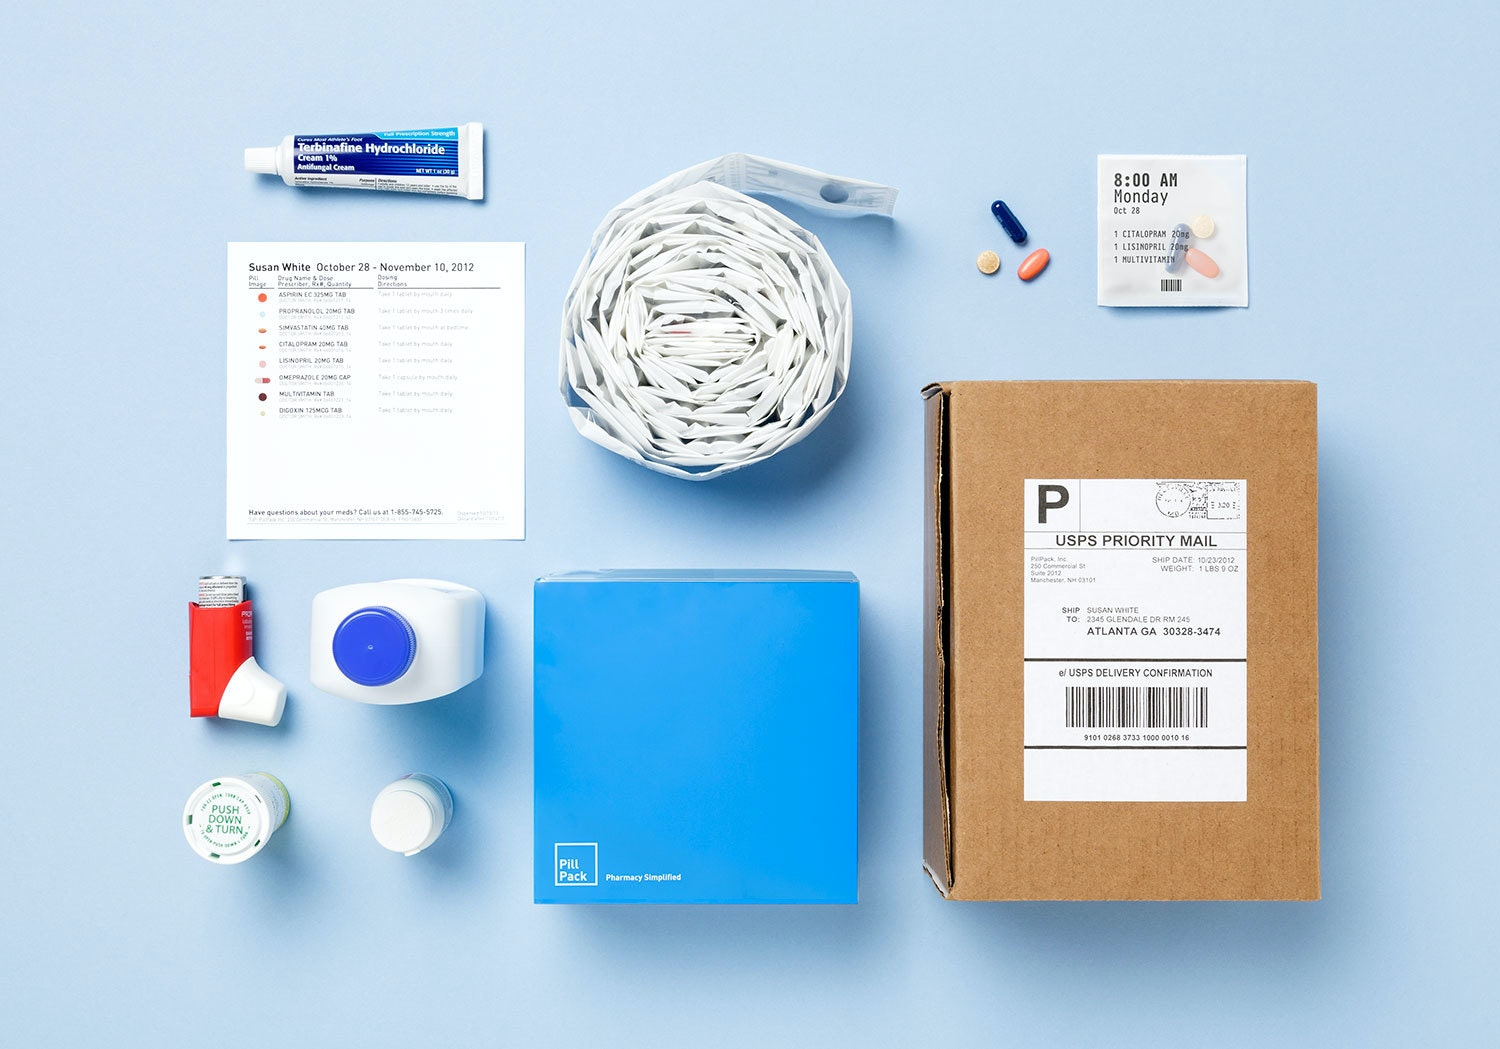 Disrupting The Drugstore Pill Pack Shipment